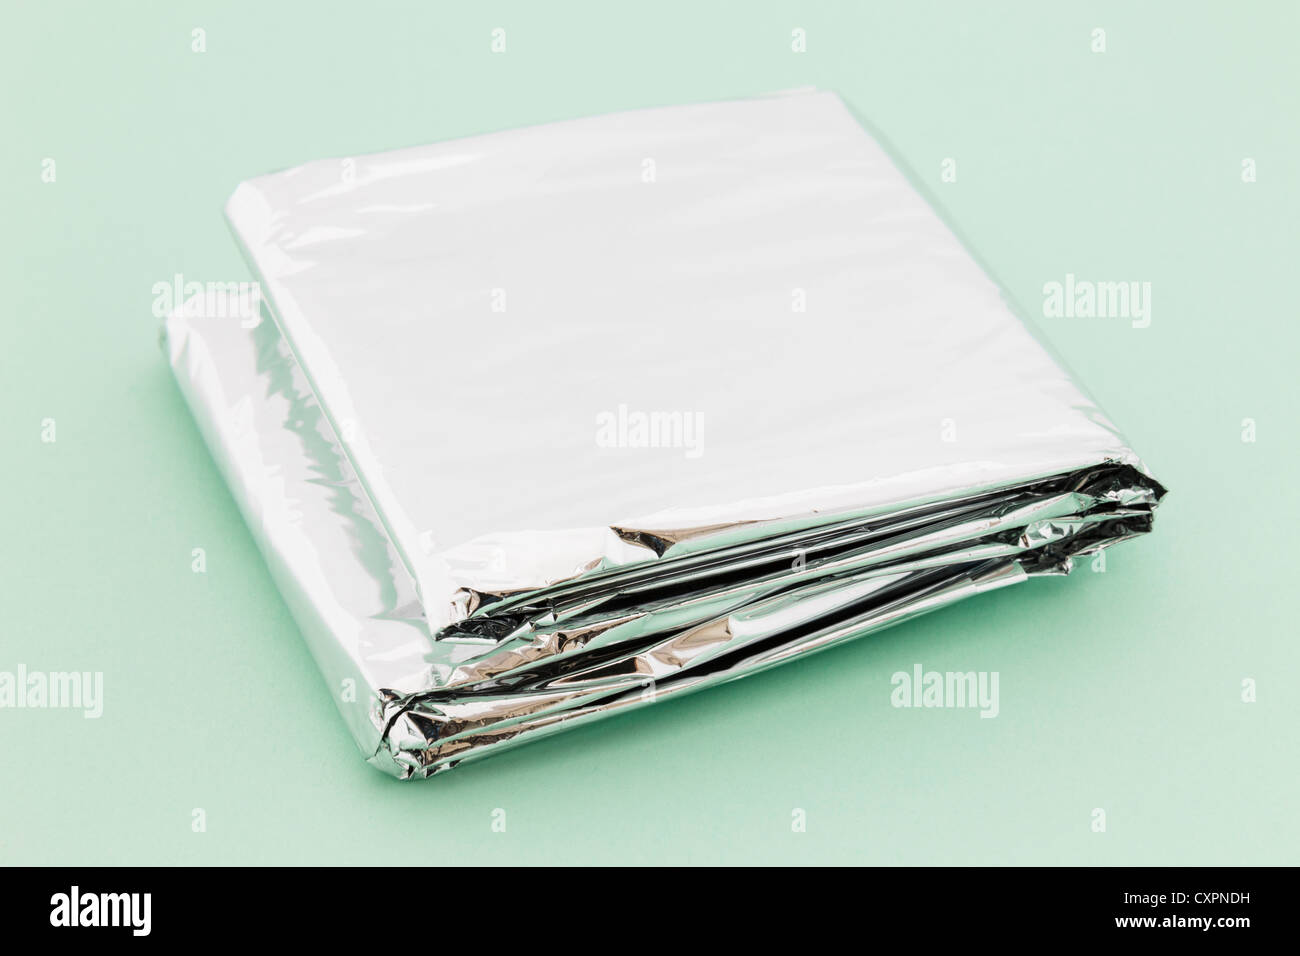 843699c306 Insulating foil emergency blanket folded up on a green background - Stock  Image